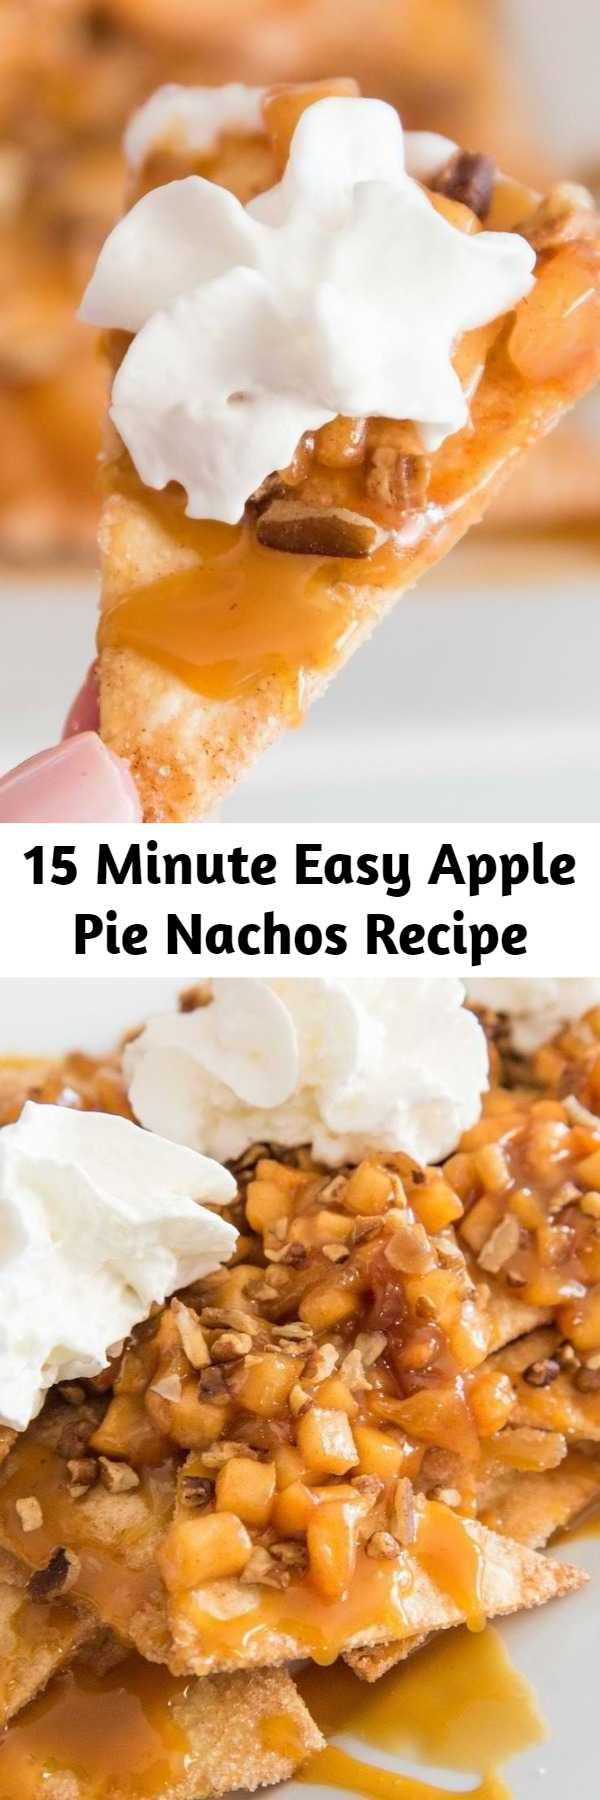 15 Minute Easy Apple Pie Nachos Recipe - Easy Baked Apple Pie Nachos – delicious cinnamon sugary apple filling on warm, crispy and sweet nachos, topped with pecans, drizzled with caramel sauce, and then topped with whipped cream! The easiest dessert that comes together in no time. It's the perfect way to serve apple pie to a crowd! Quick and easy recipe. An irresistible party dessert!